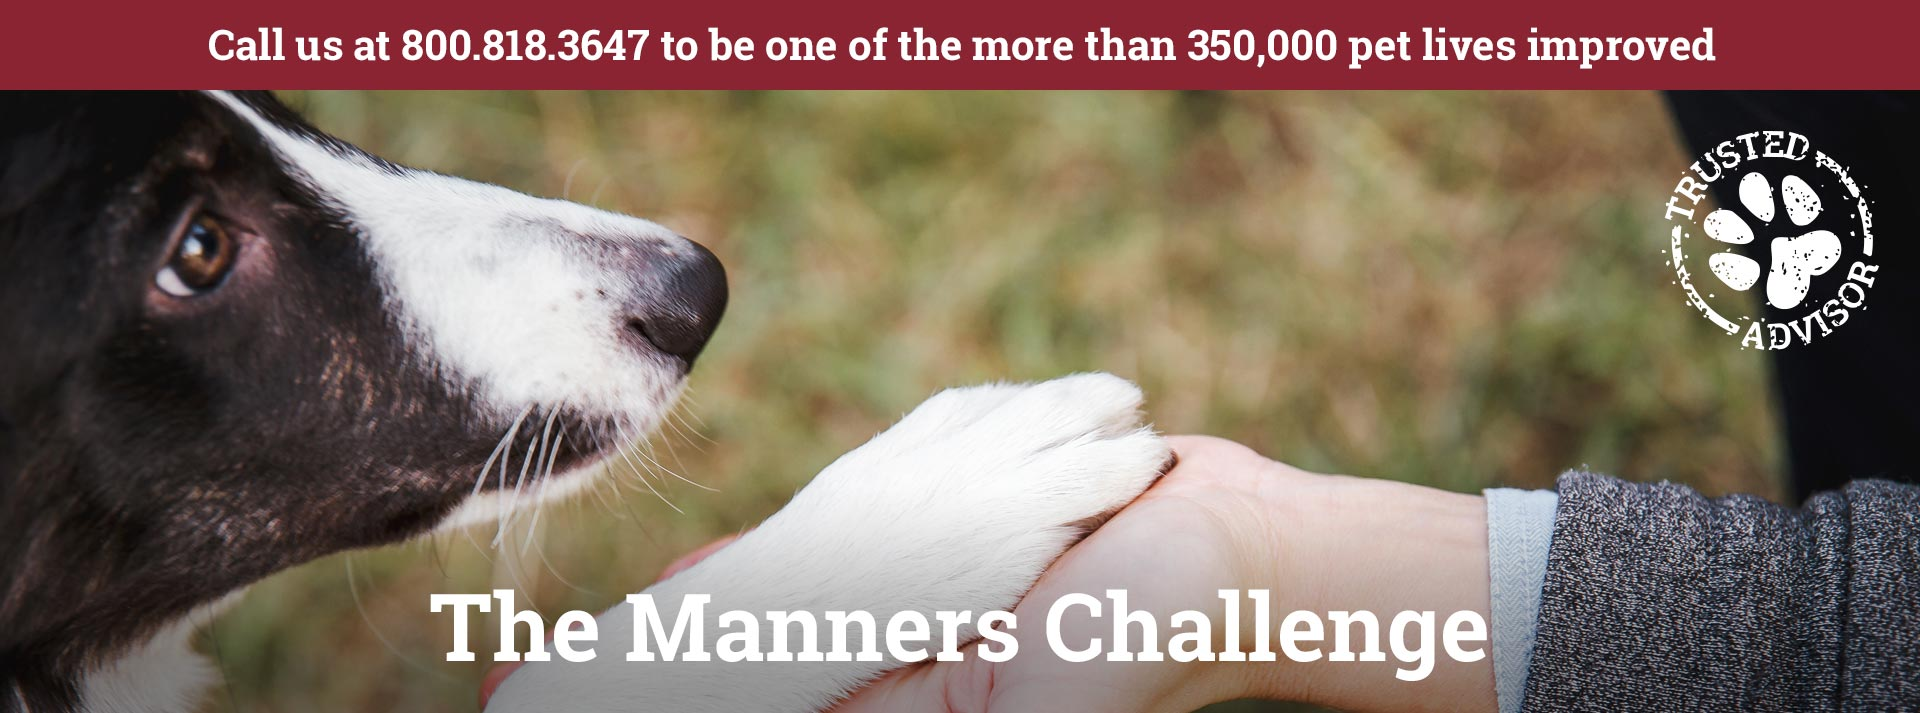 The Manners Challenge